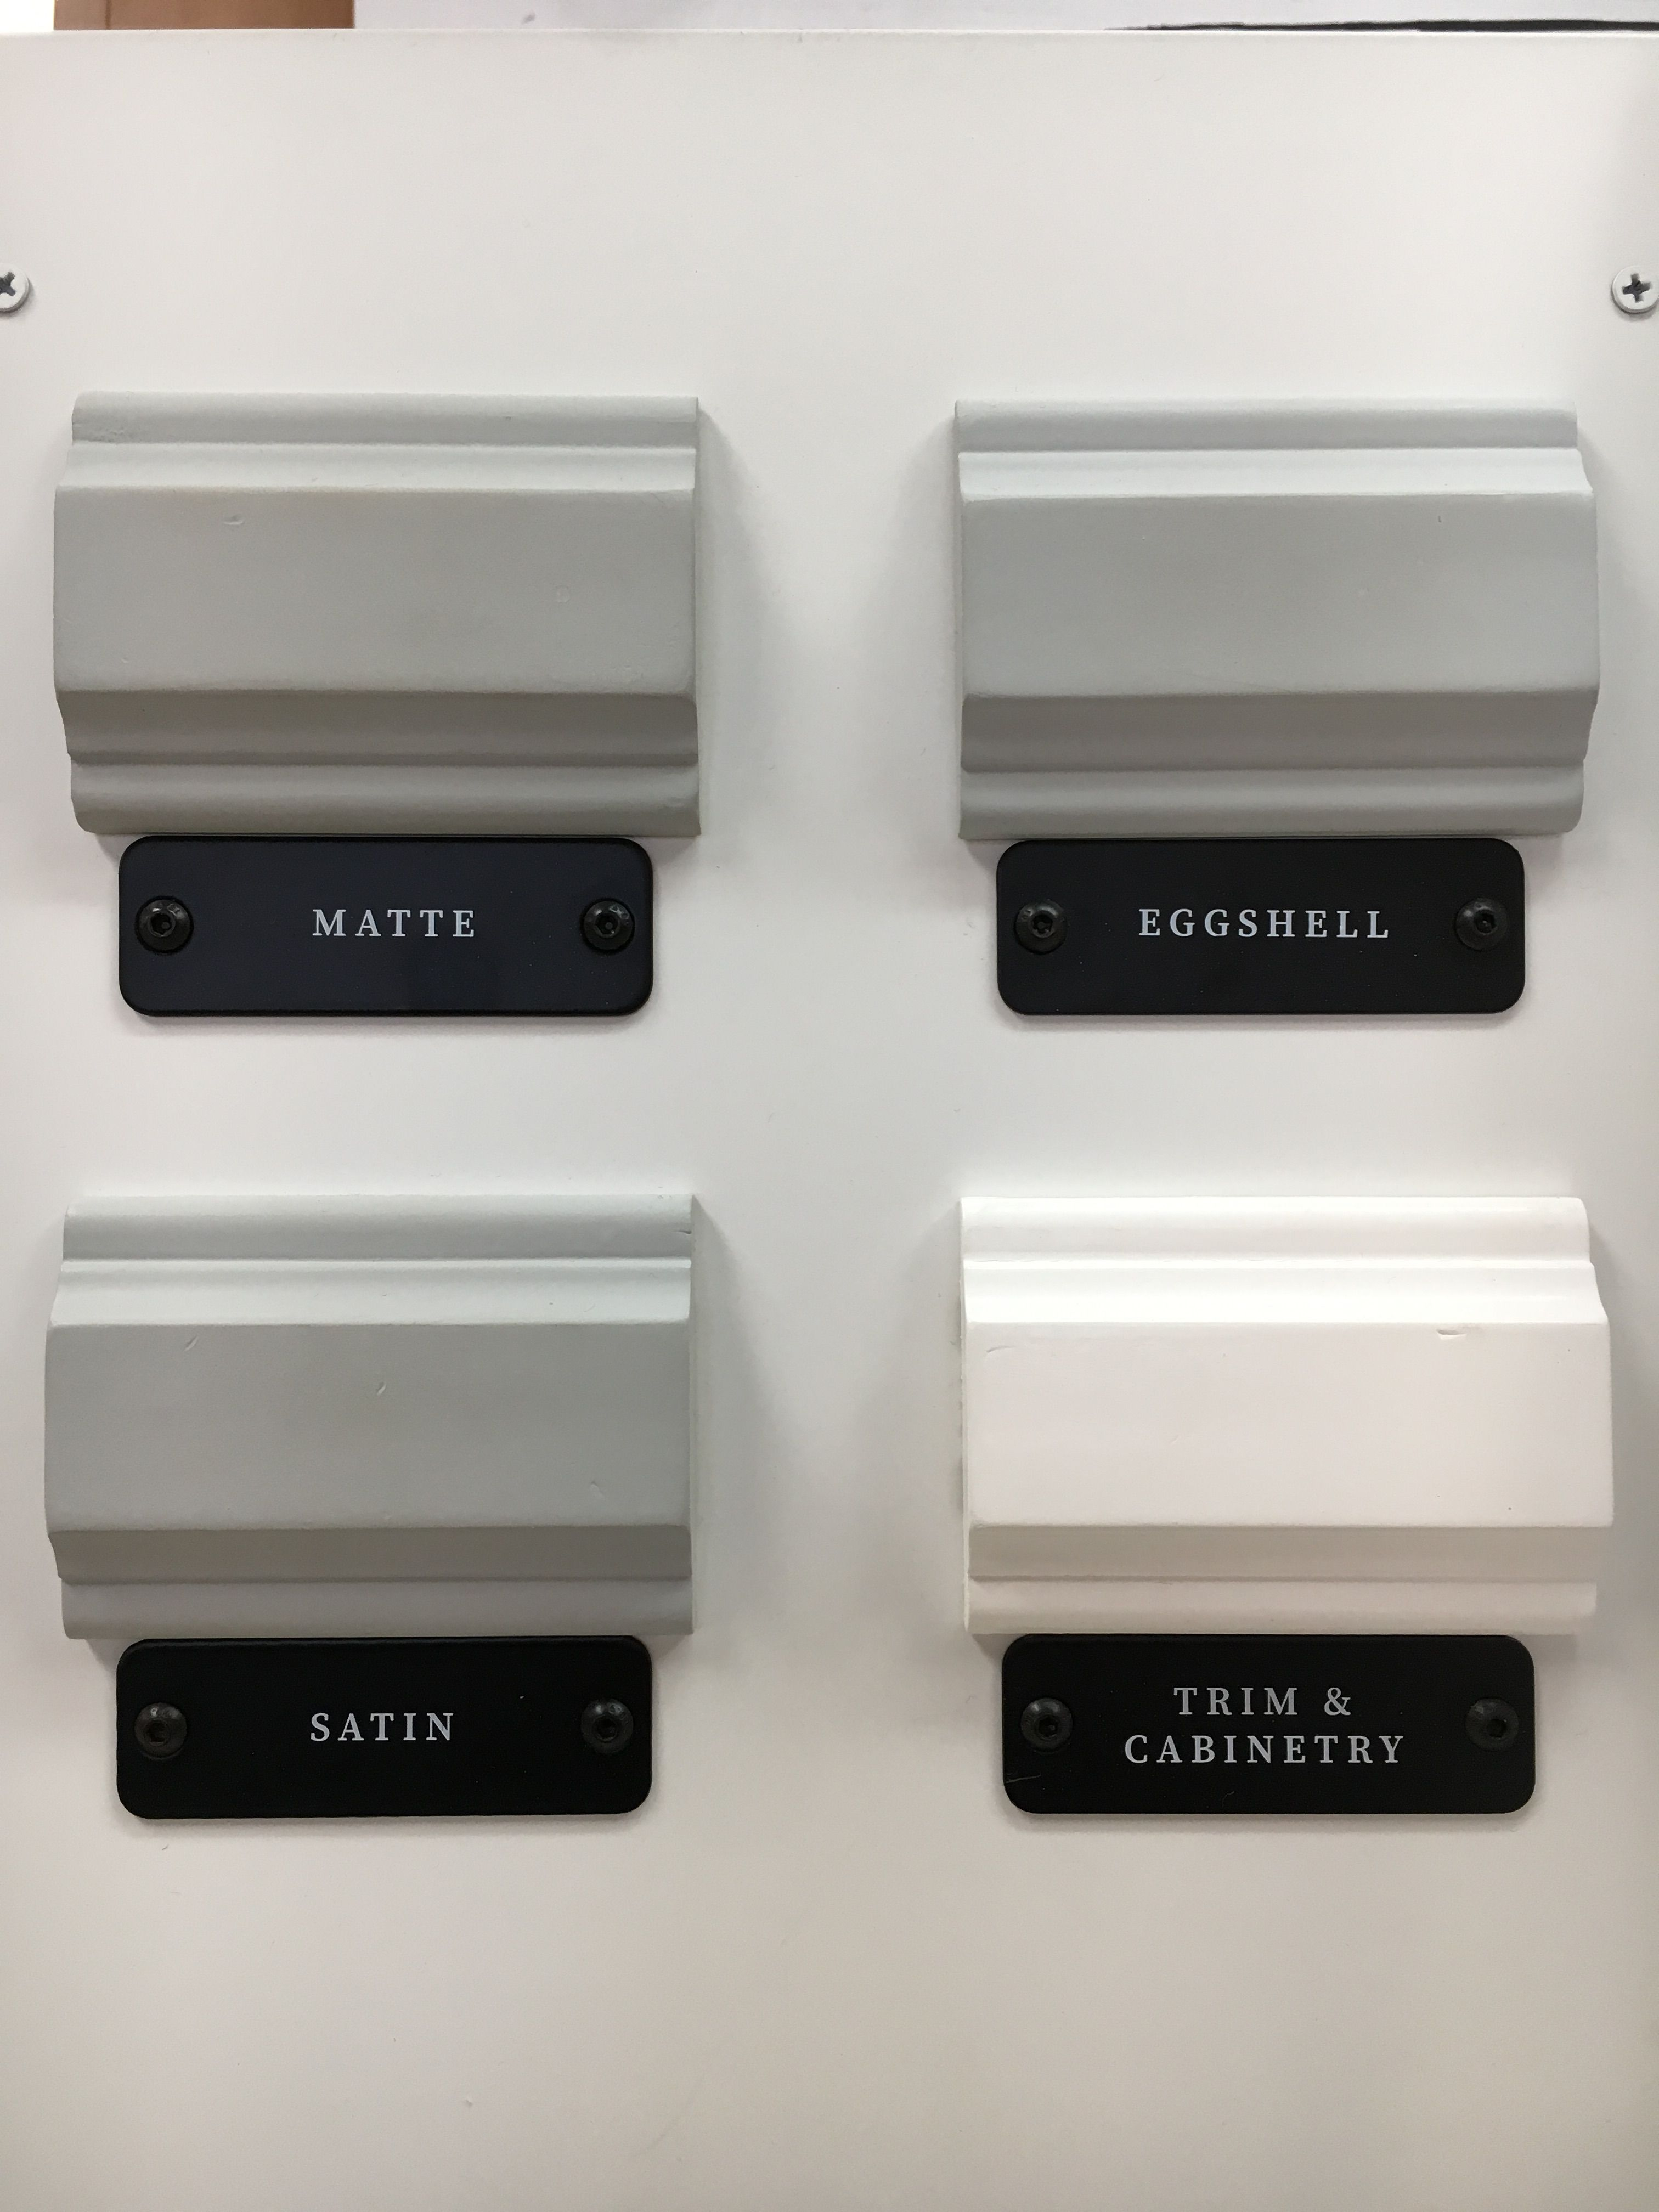 Magnolia Home Paint Created By Joanna Gaines Comes In Matte Eggshell Satin Sheens Available At Kimps Ac Magnolia Homes Paint Magnolia Homes Ace Hardware